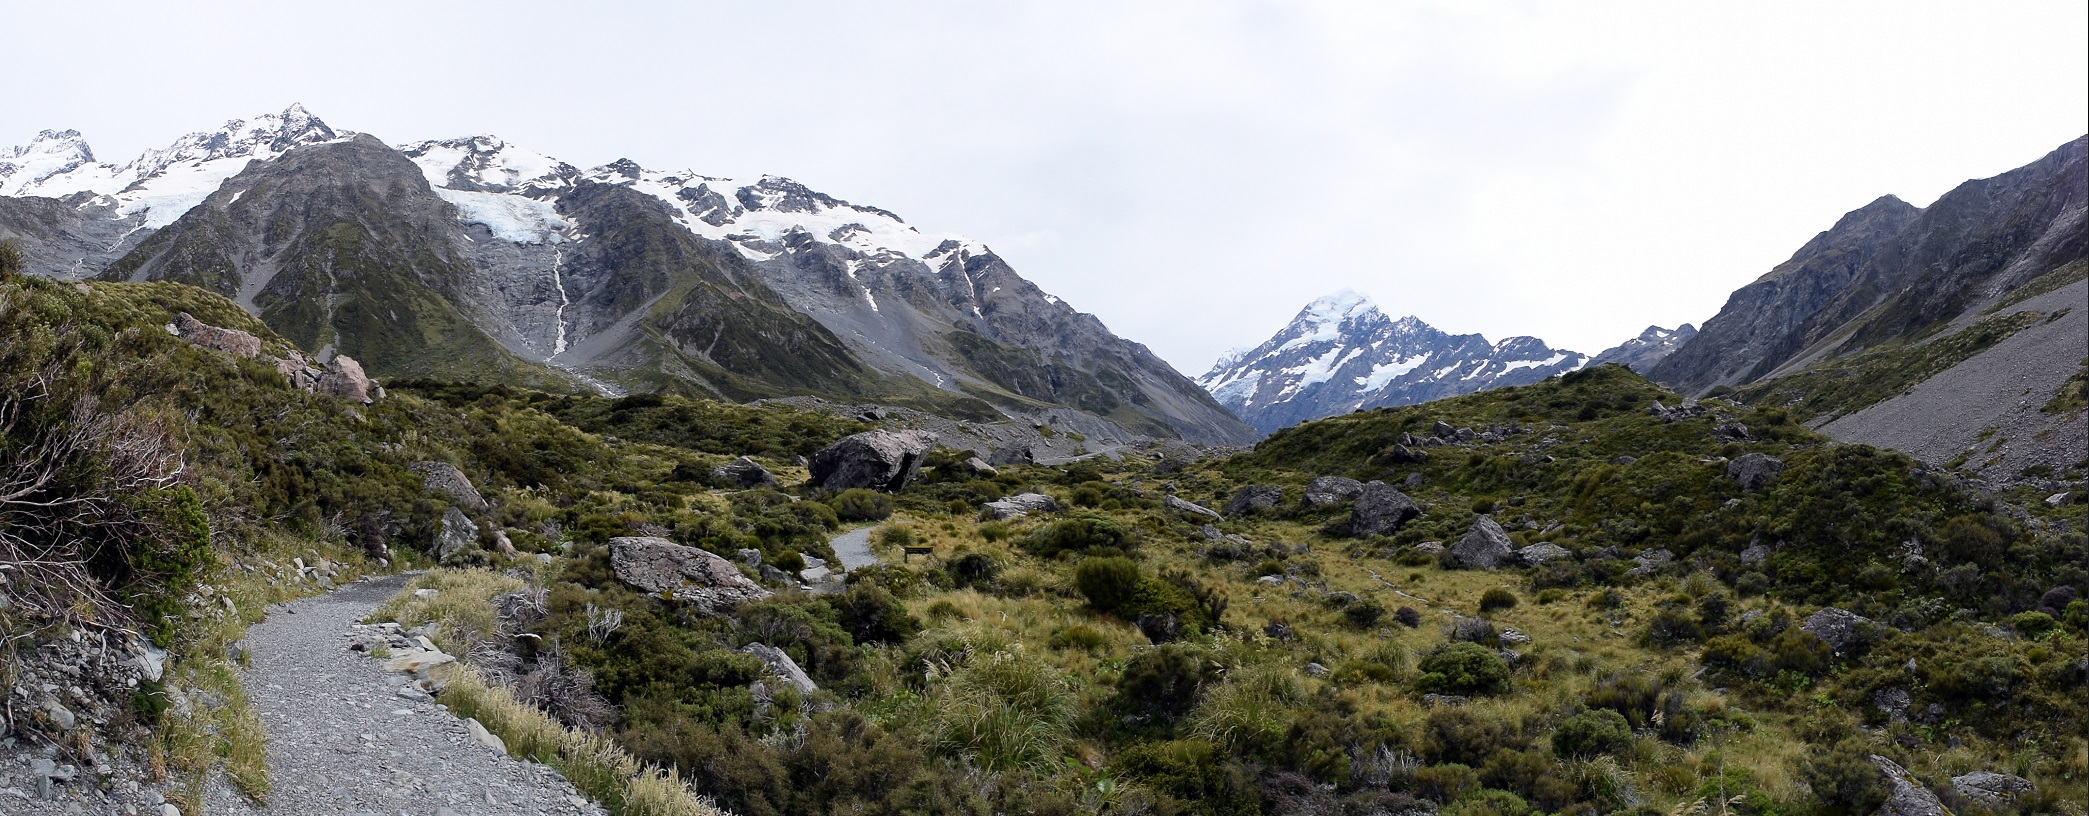 The Hooker Valley track in Aoraki/Mt. Cook National Park in New Zealand, on a cloudy day.